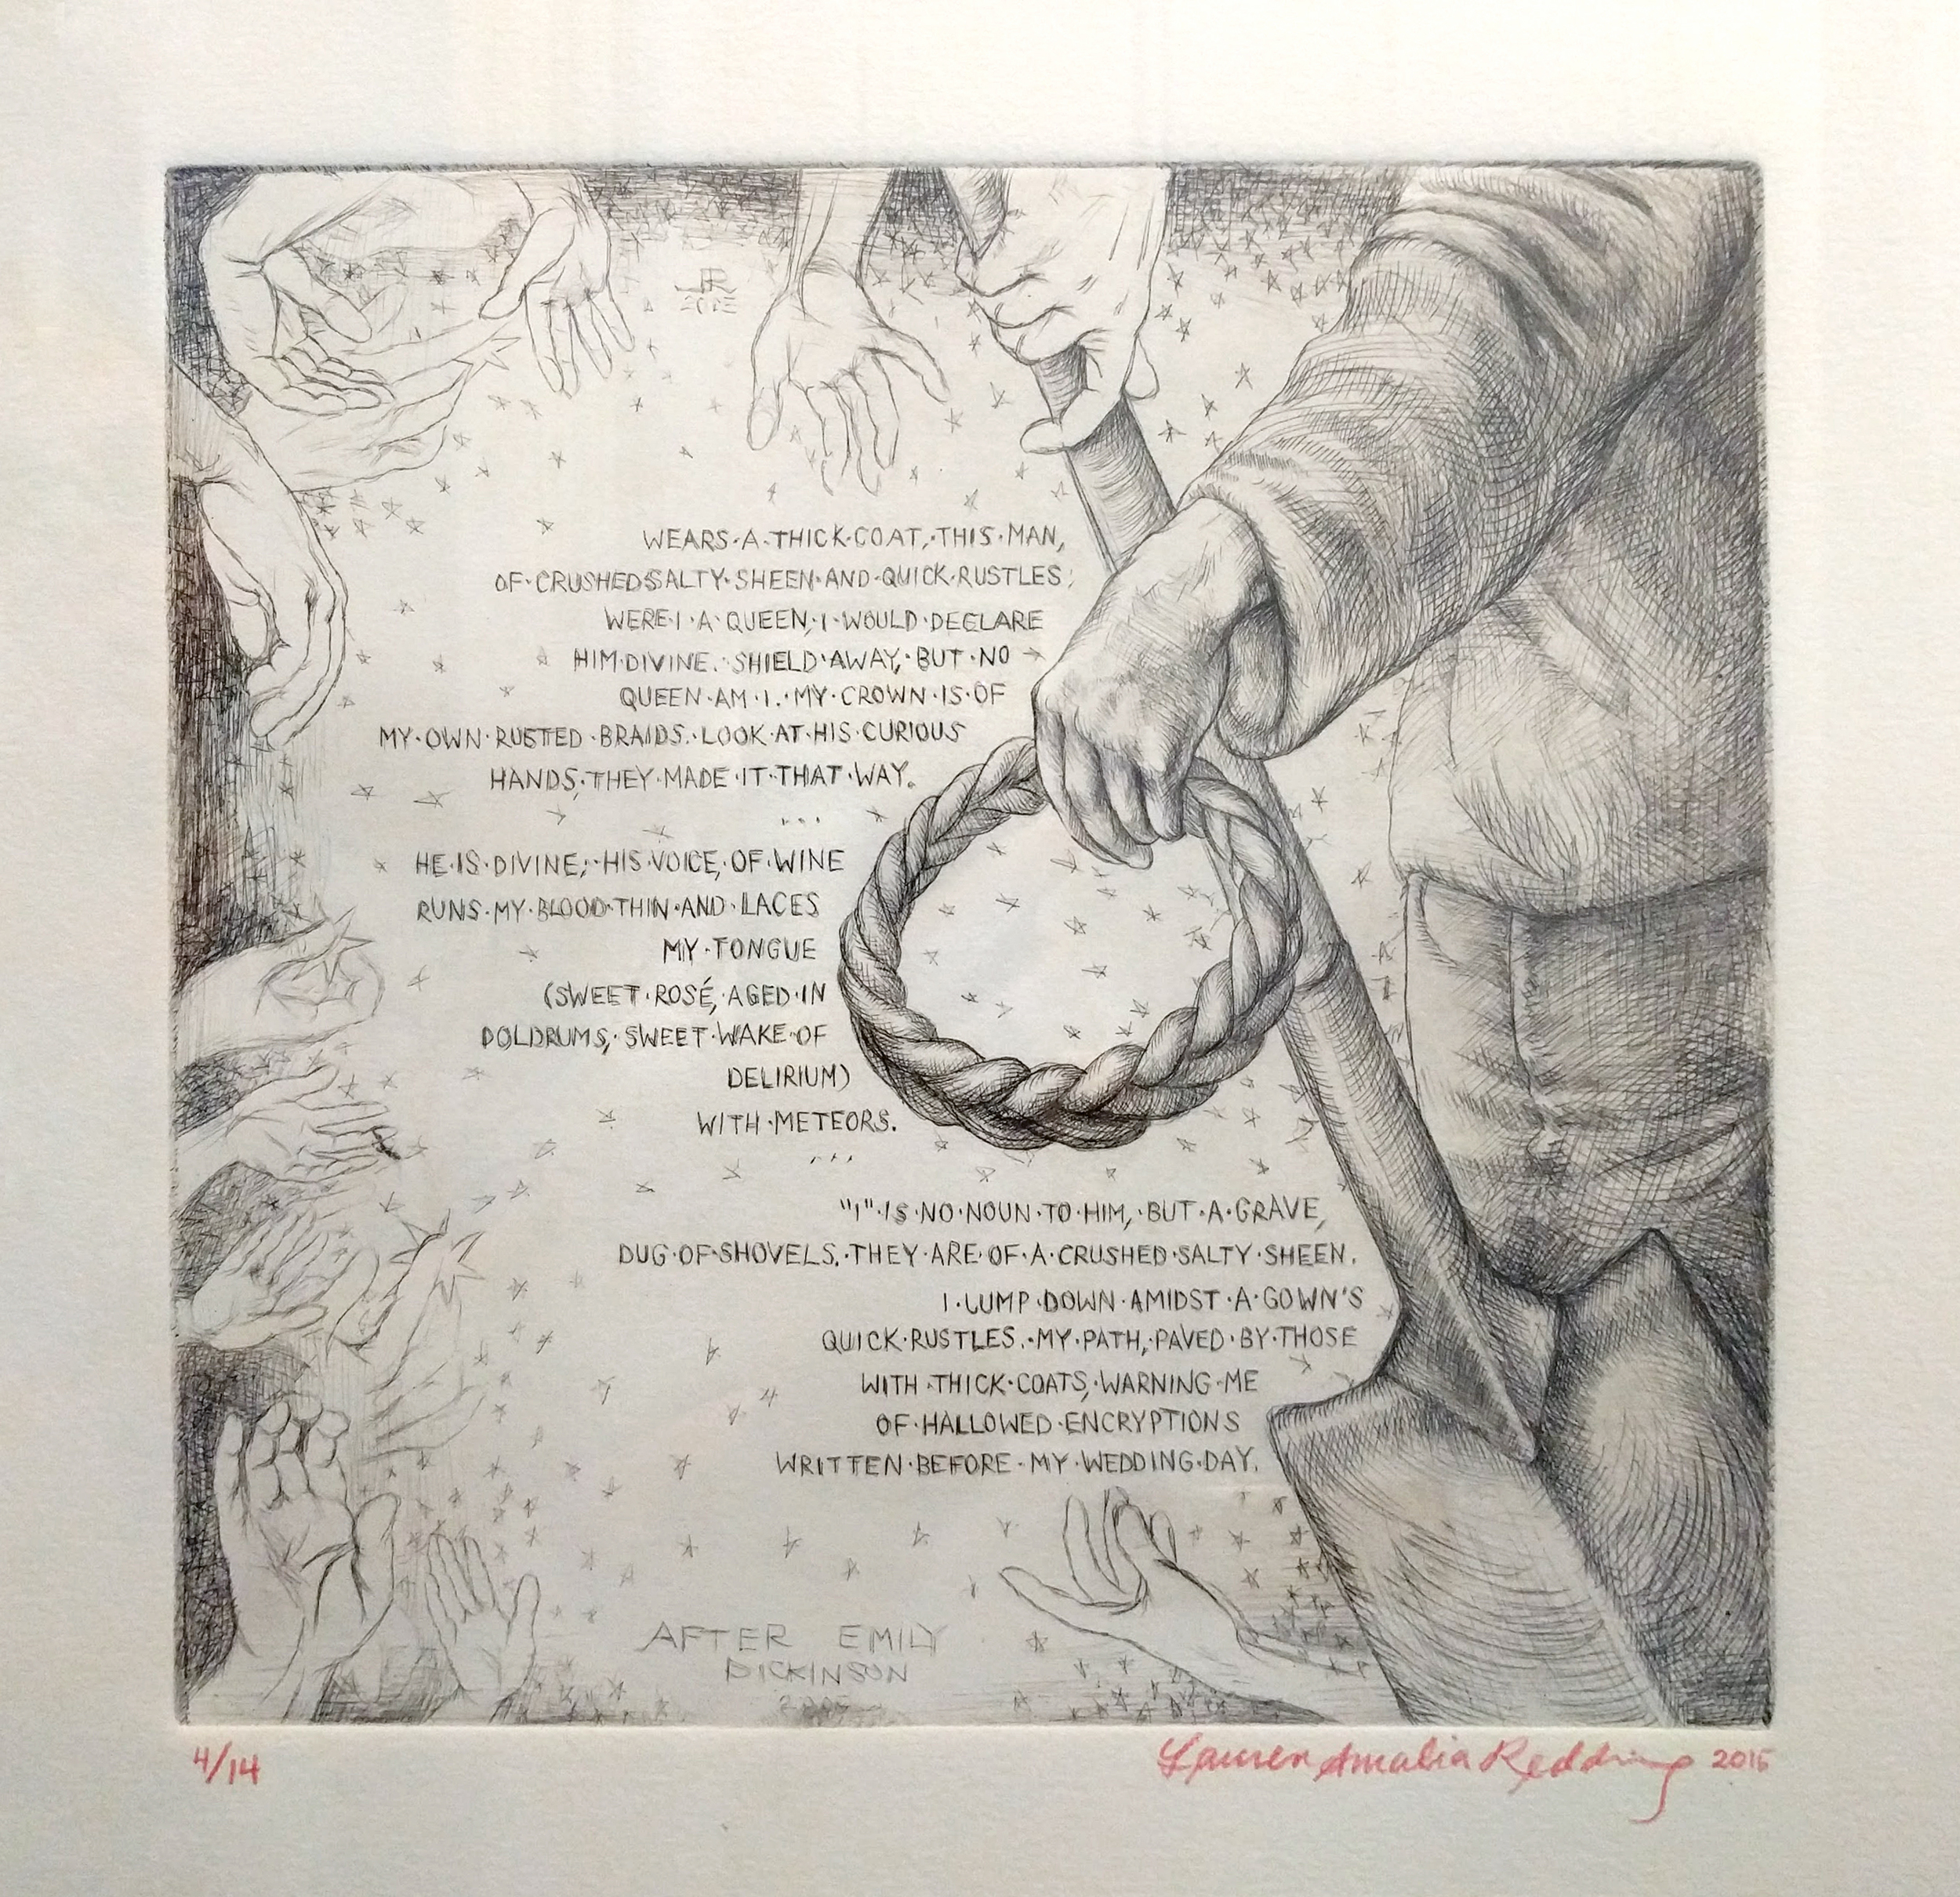 """Lauren Amalia Redding """"After Emily Dickinson"""" 2015  drypoint etching on paper, ed. 1/14, 8 x 8 in. (print)"""